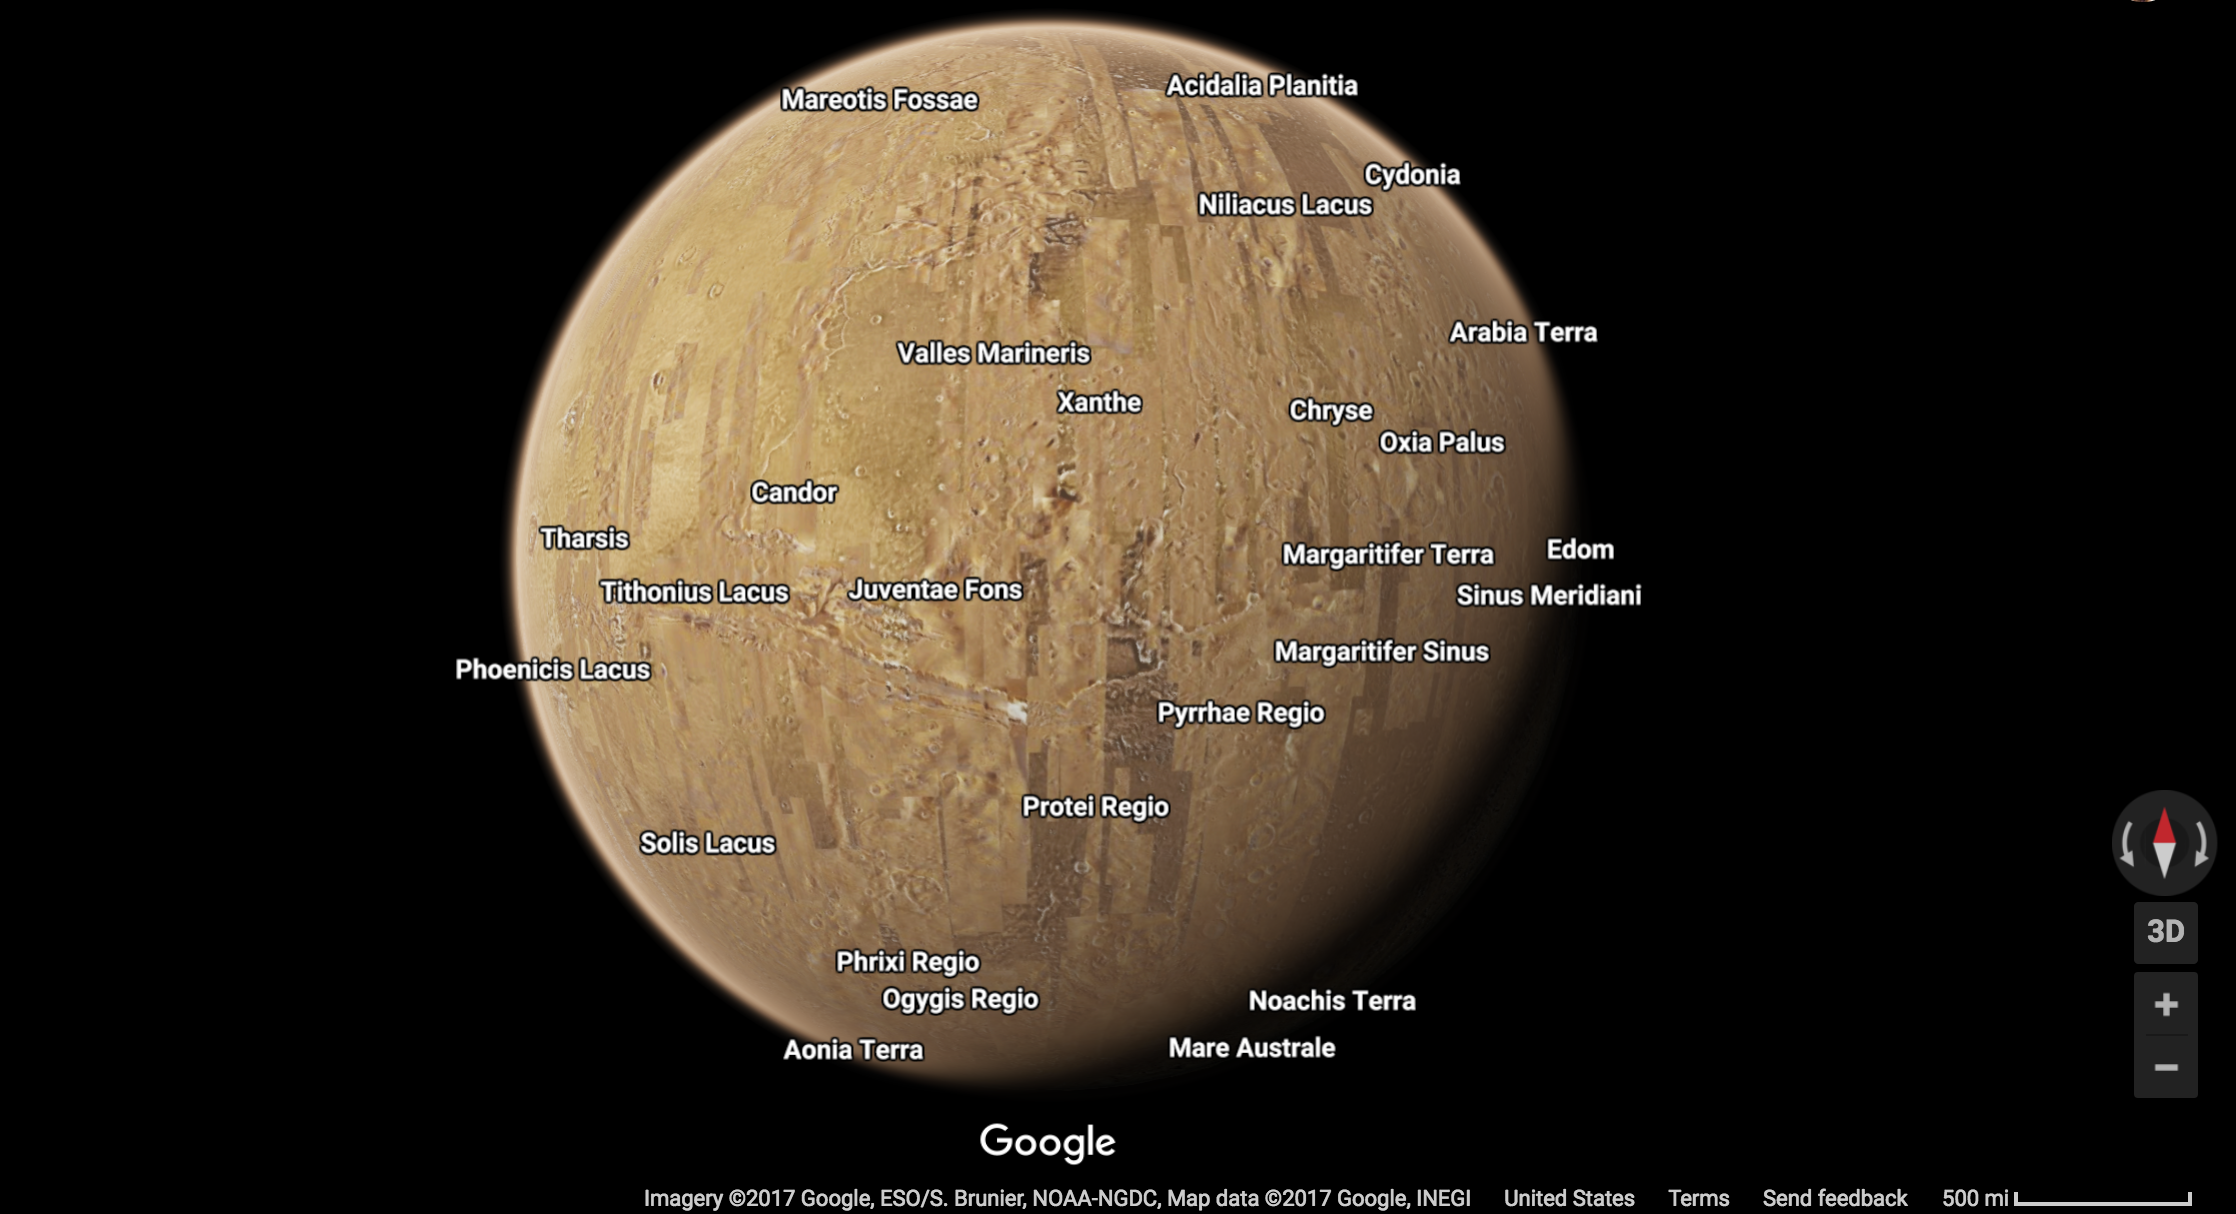 the new feature from google maps lets you explore space thanks to a partnership with nasapngrectu003d308015731178u0026fmu003dpngu0026wu003d1200